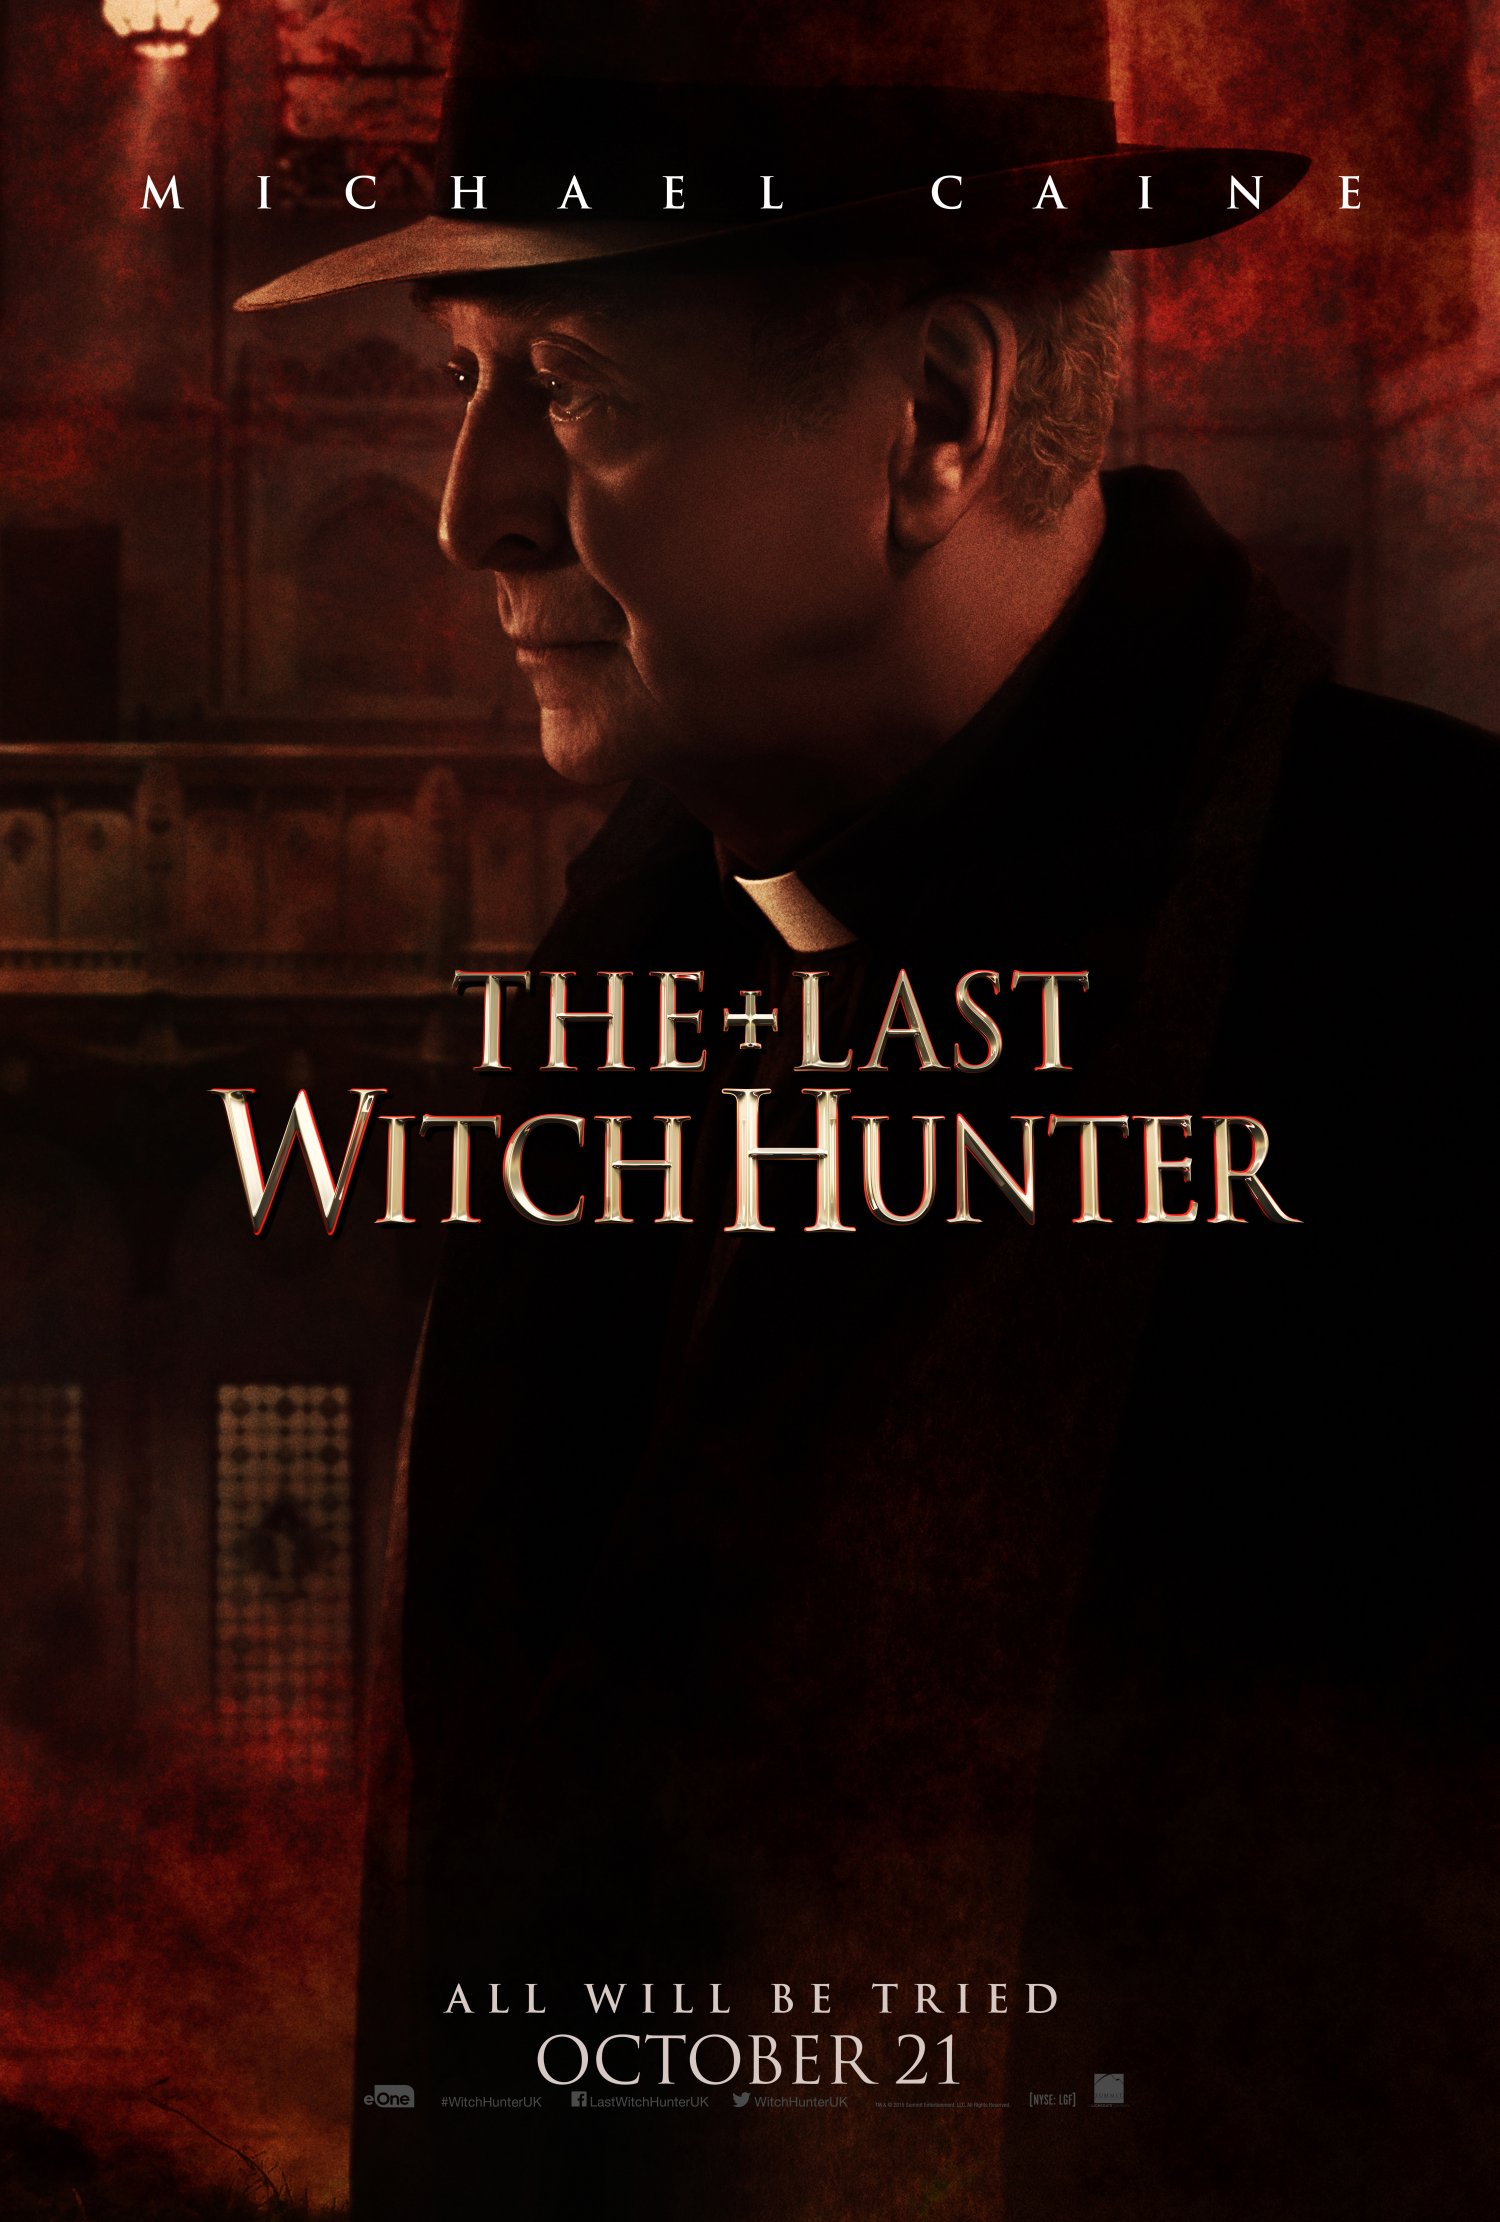 The Last Witch Hunter – Michael Caine